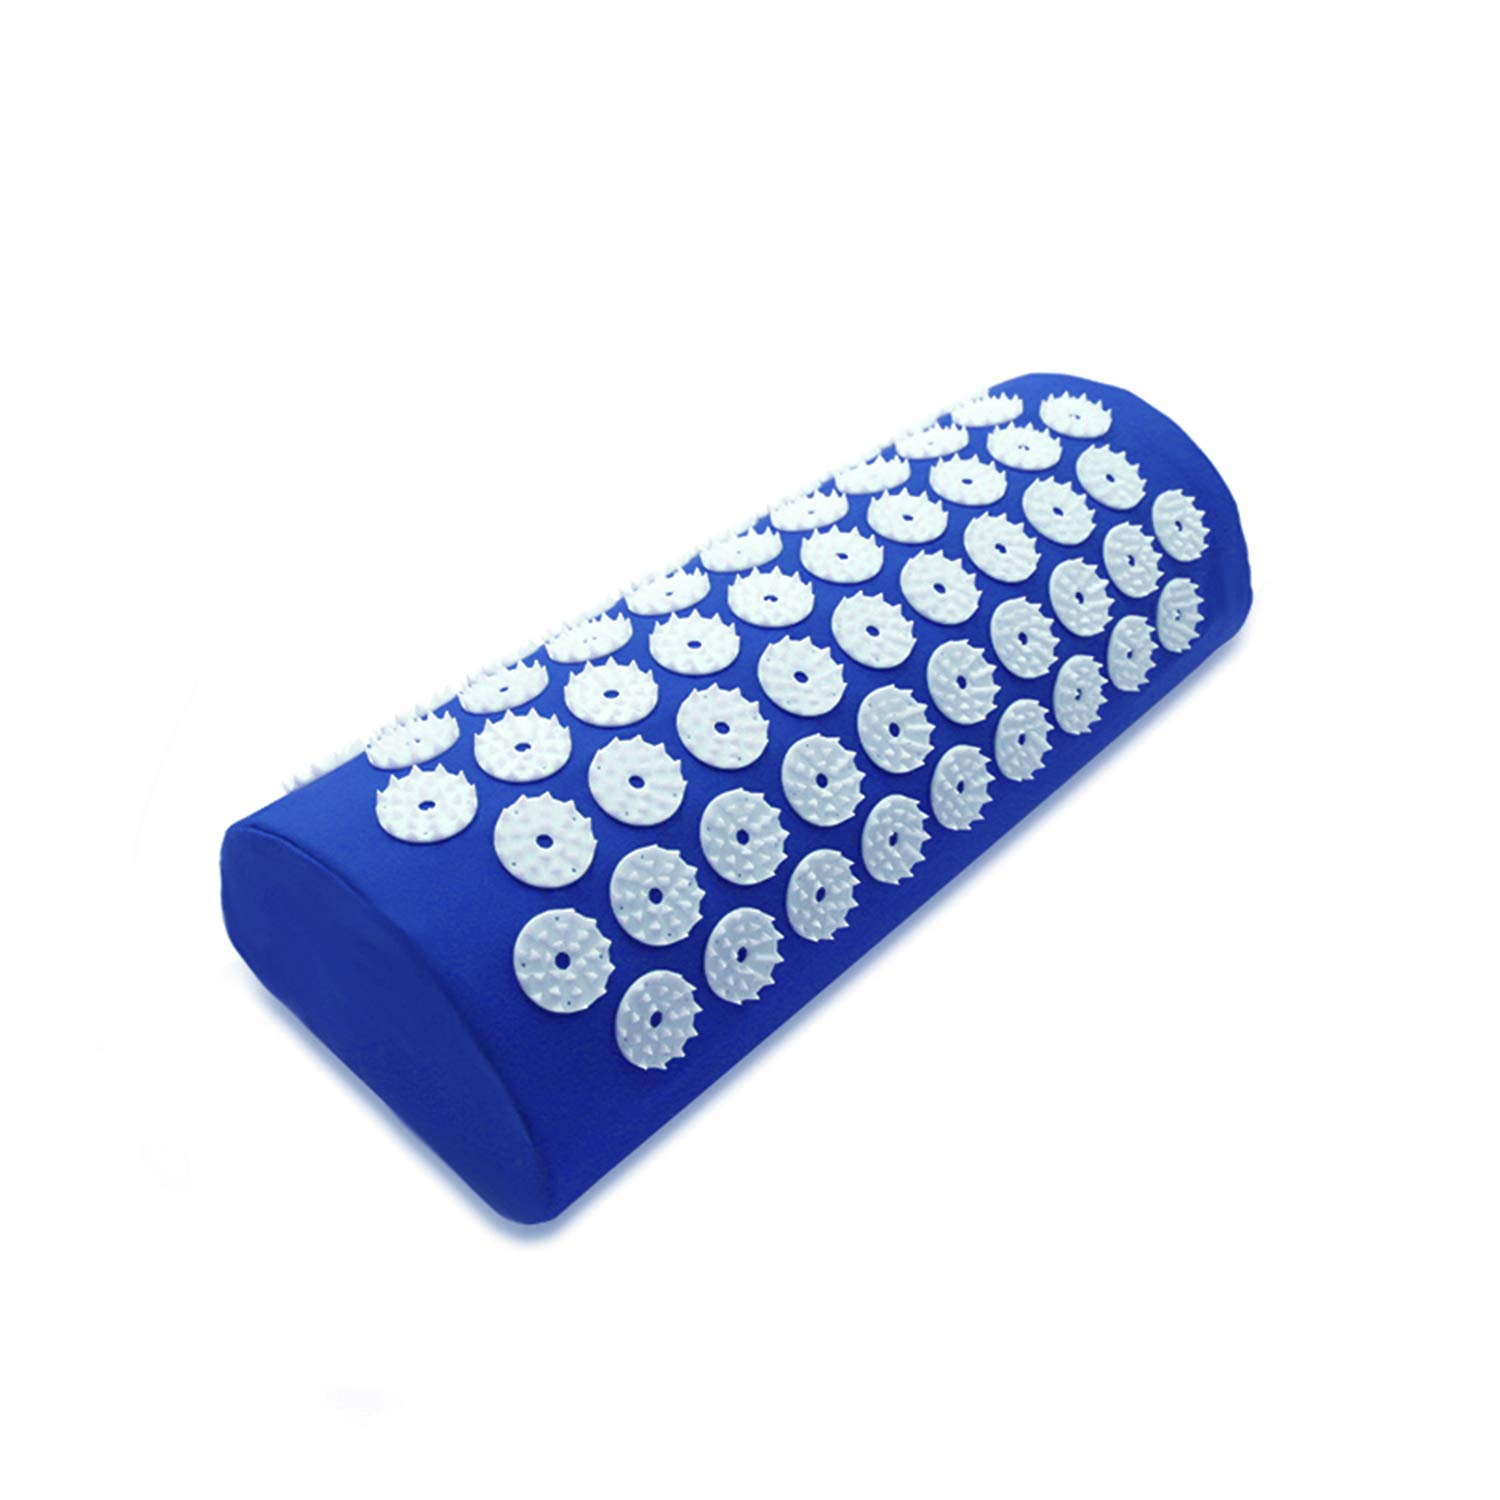 Acupressure Mat and Pillow Set for Back/Neck Pain Relief and Muscle Relaxation (Blue) by Colin